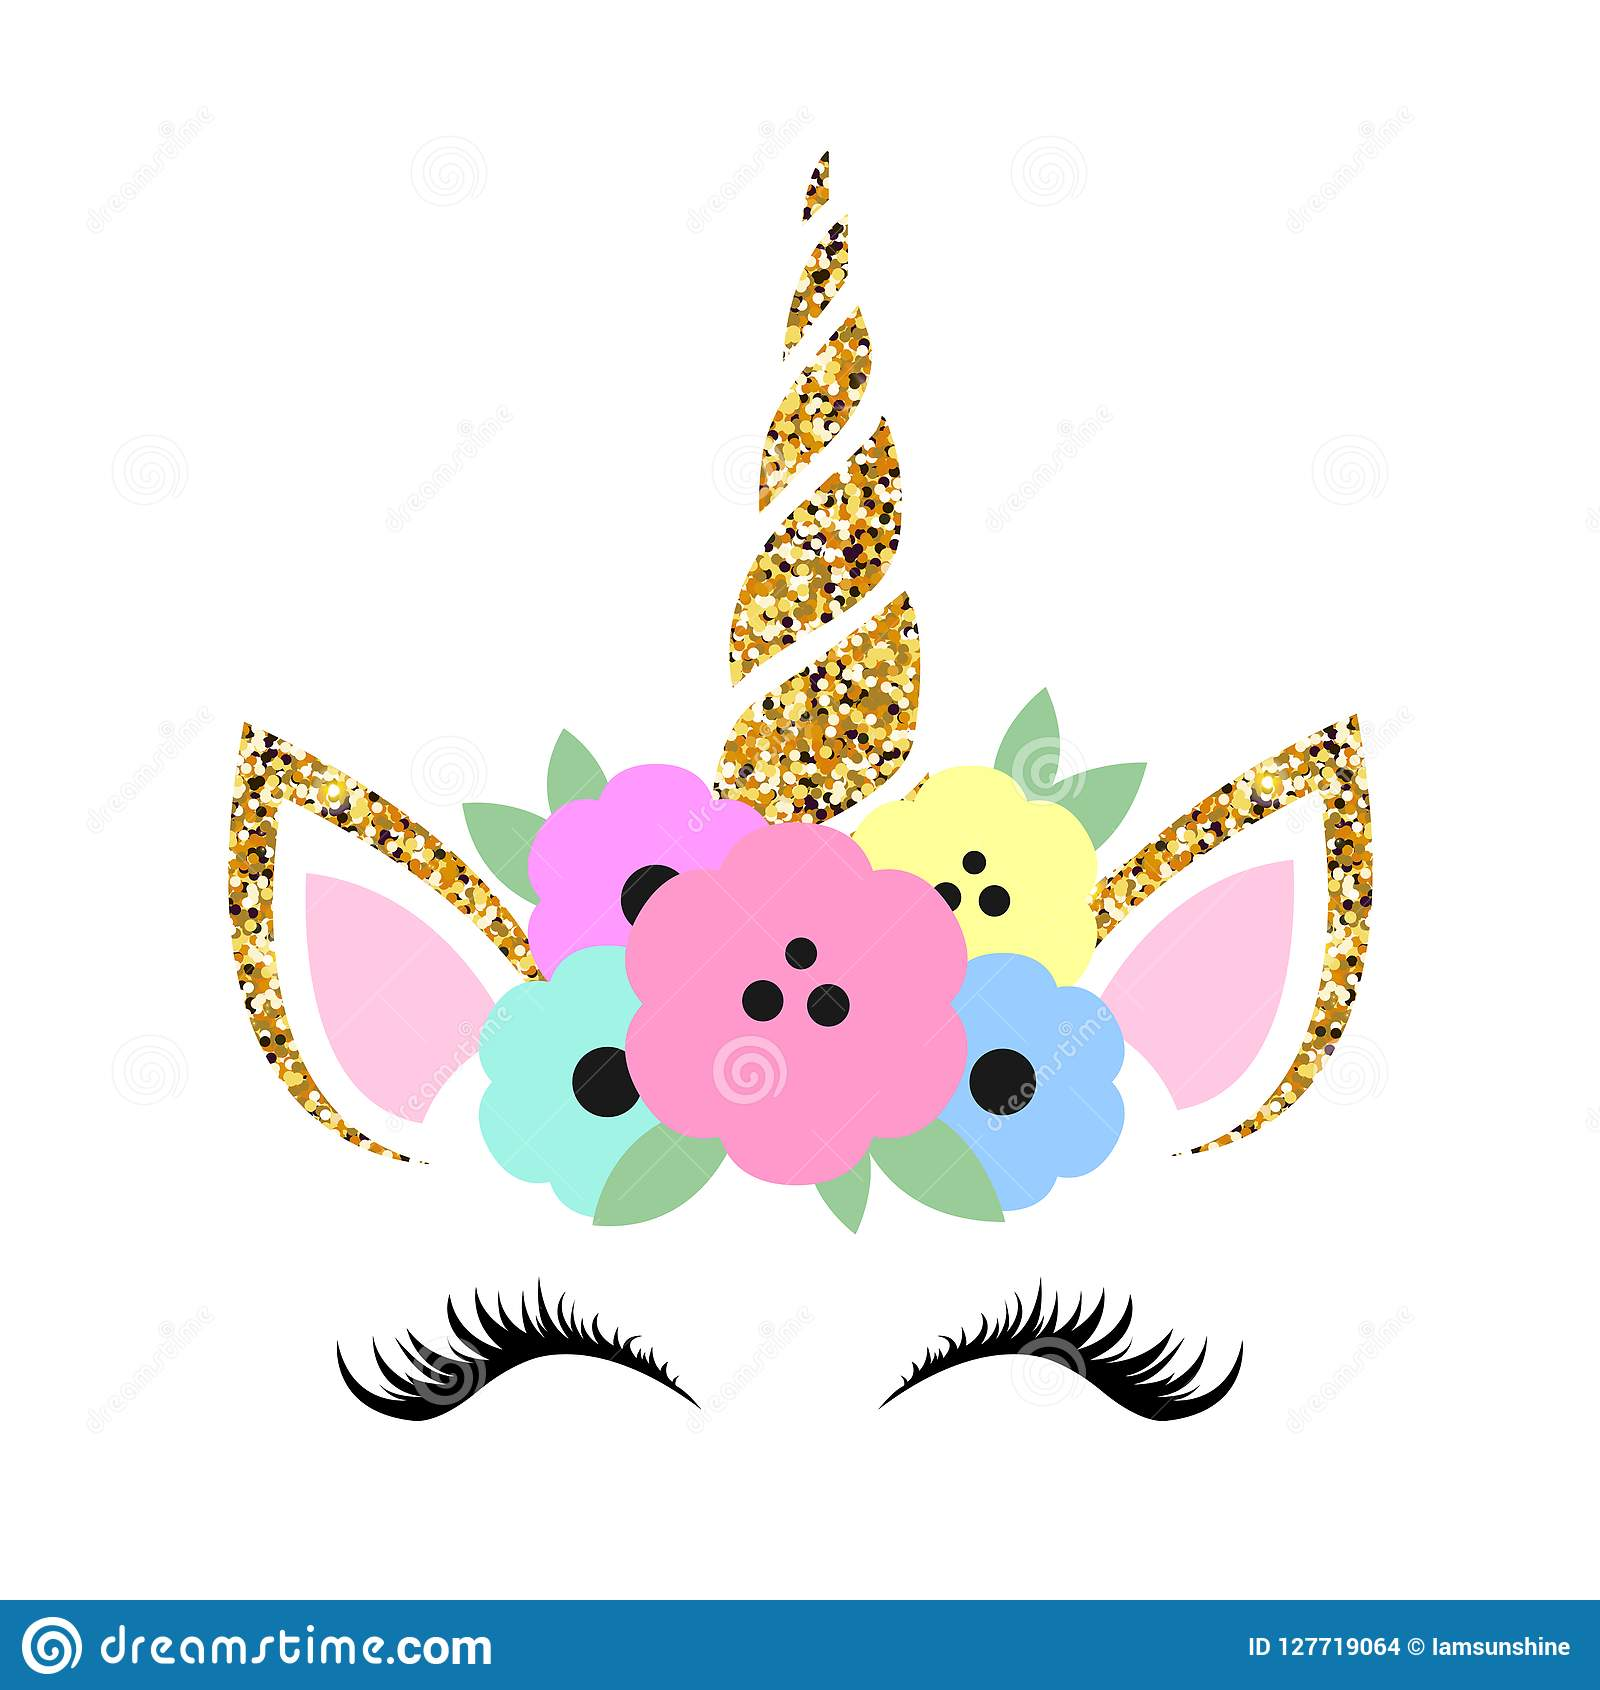 Cute Unicorn Illustration With Glitter And Flowers Stock Vector Illustration Of Glassy Background 127719064